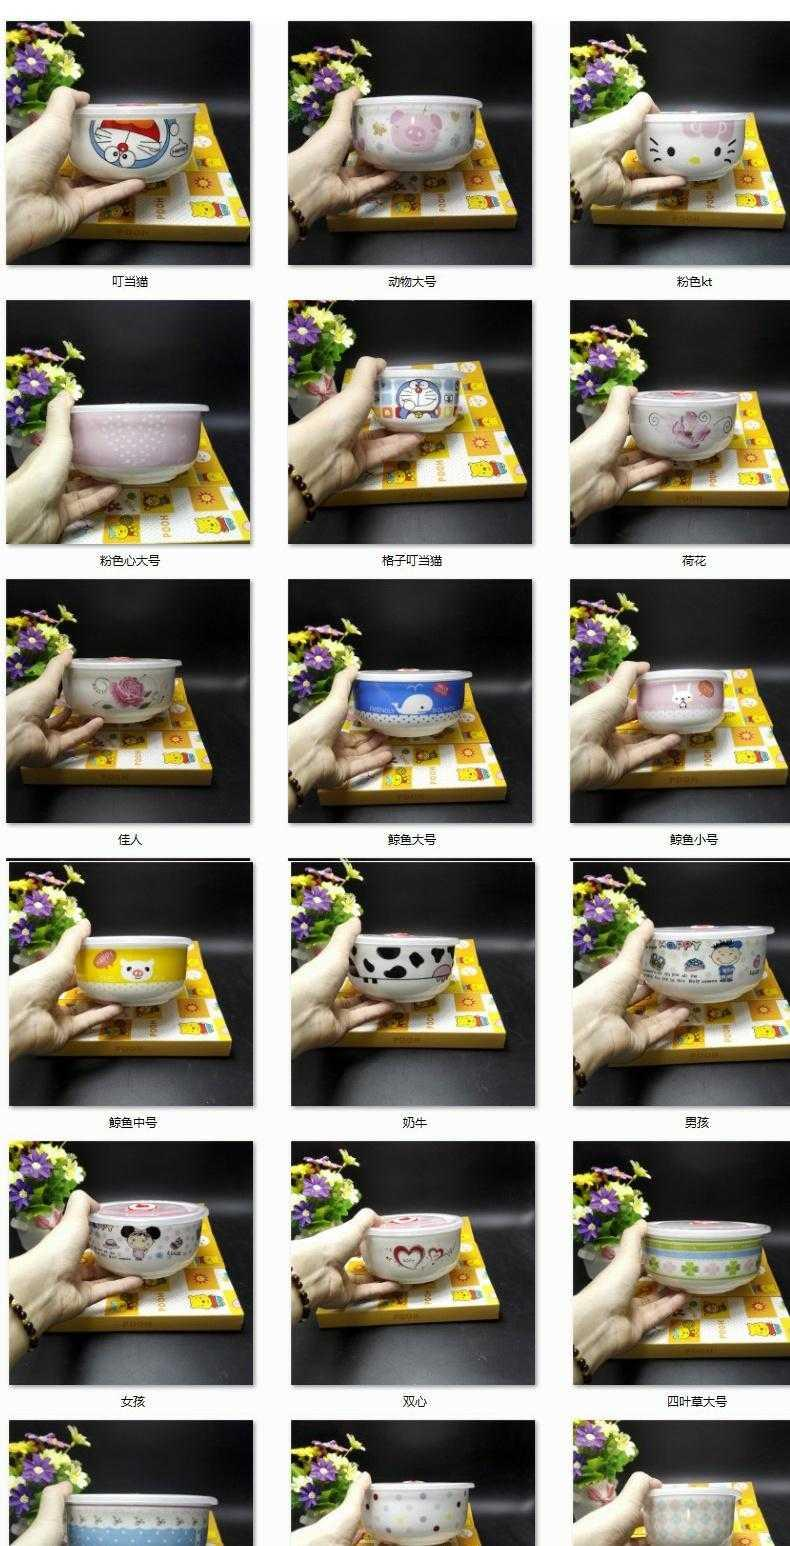 Bowl of fresh big ipads porcelain ceramic lunch box lid microwave noodles small single sealing Bowl with cover with to hold